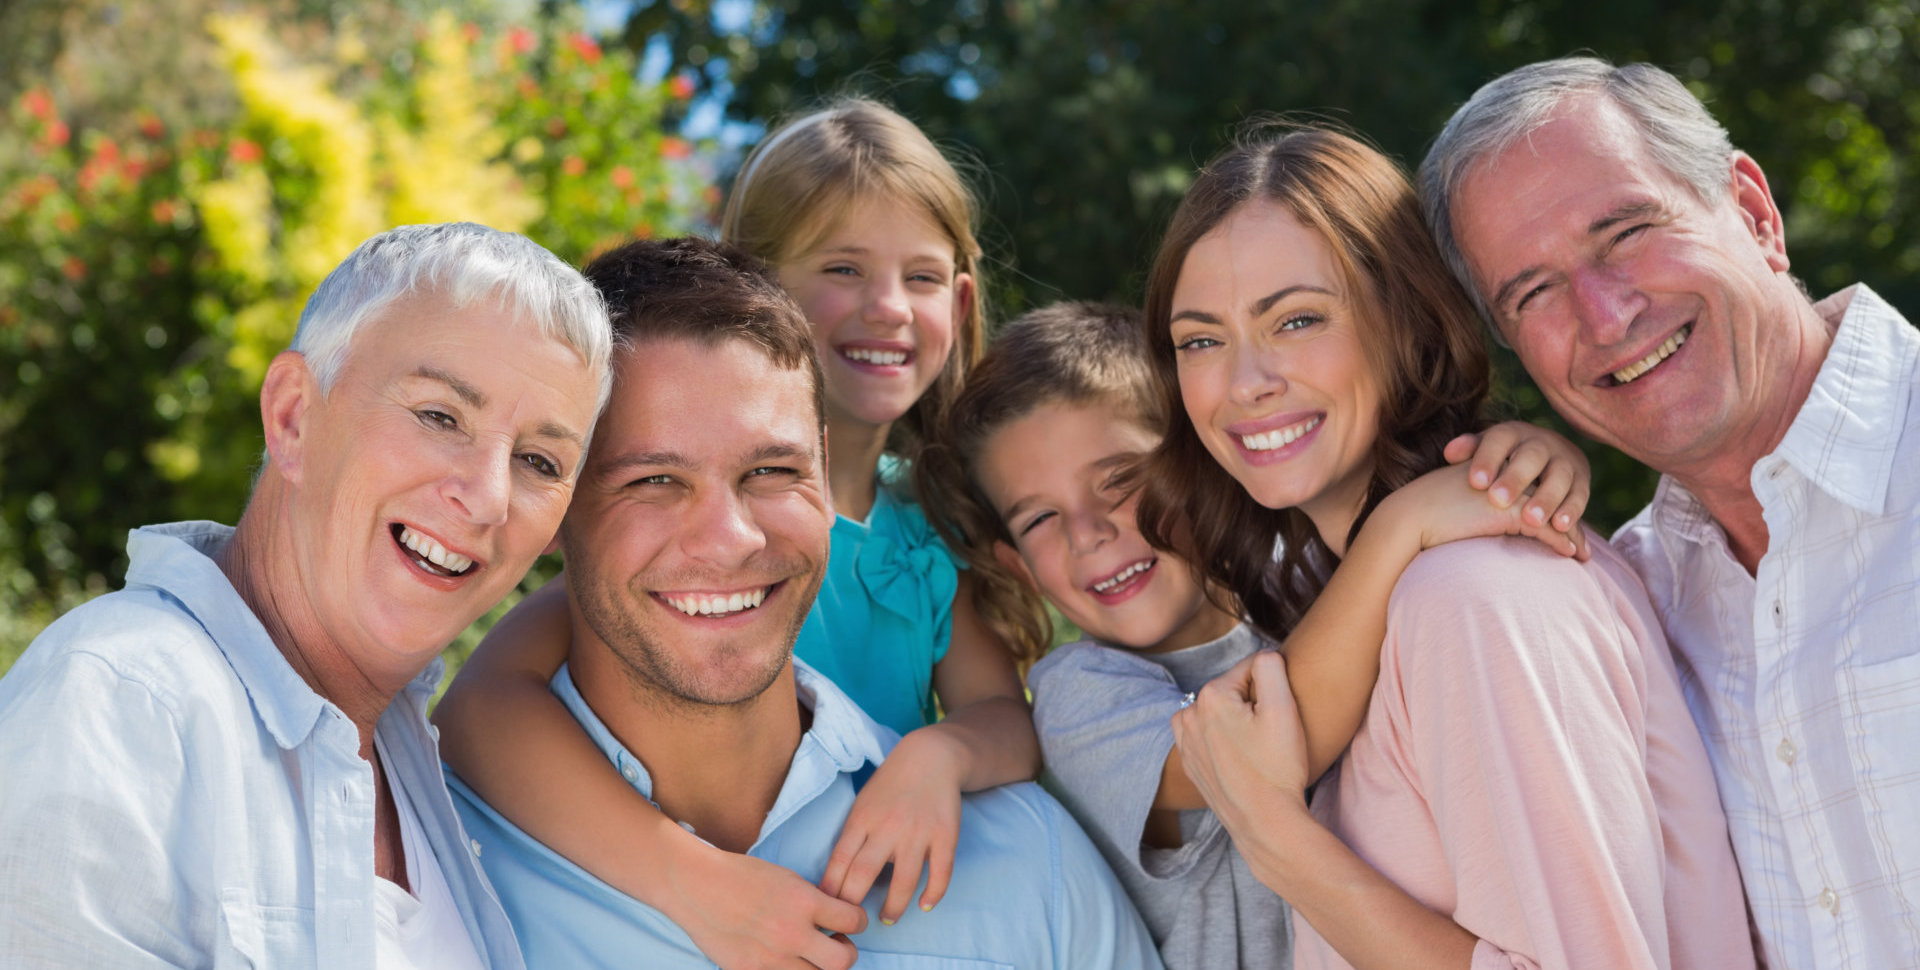 Smiling family and grandparents in the countryside embracing and smiling at camera